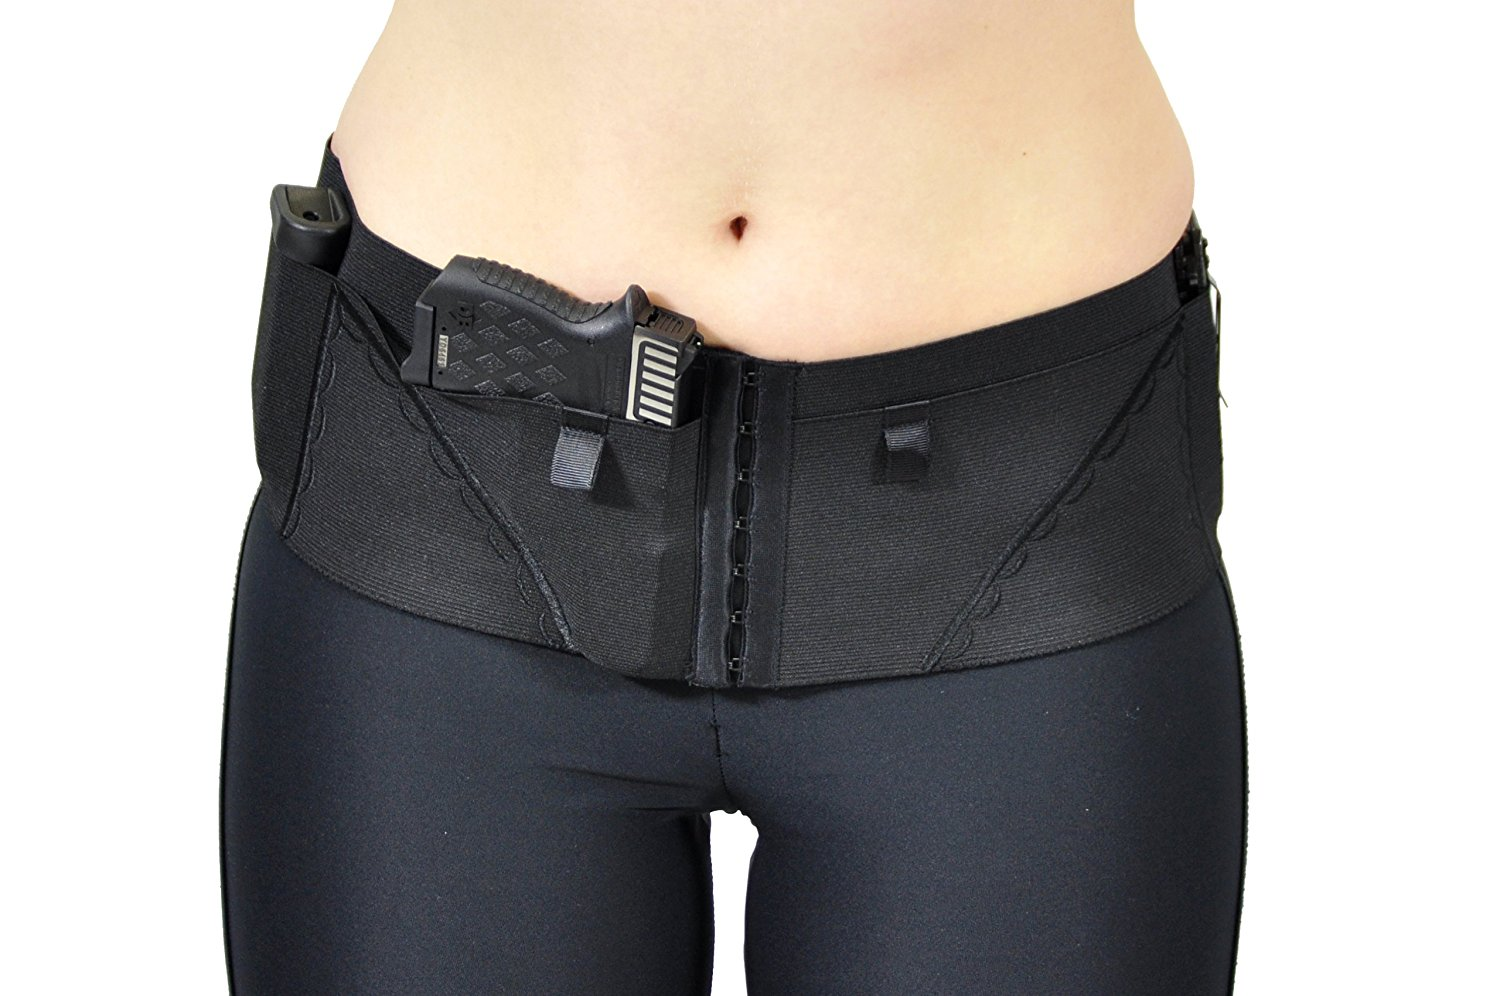 Best Holsters For Women Conceal Carry Holsters For Women